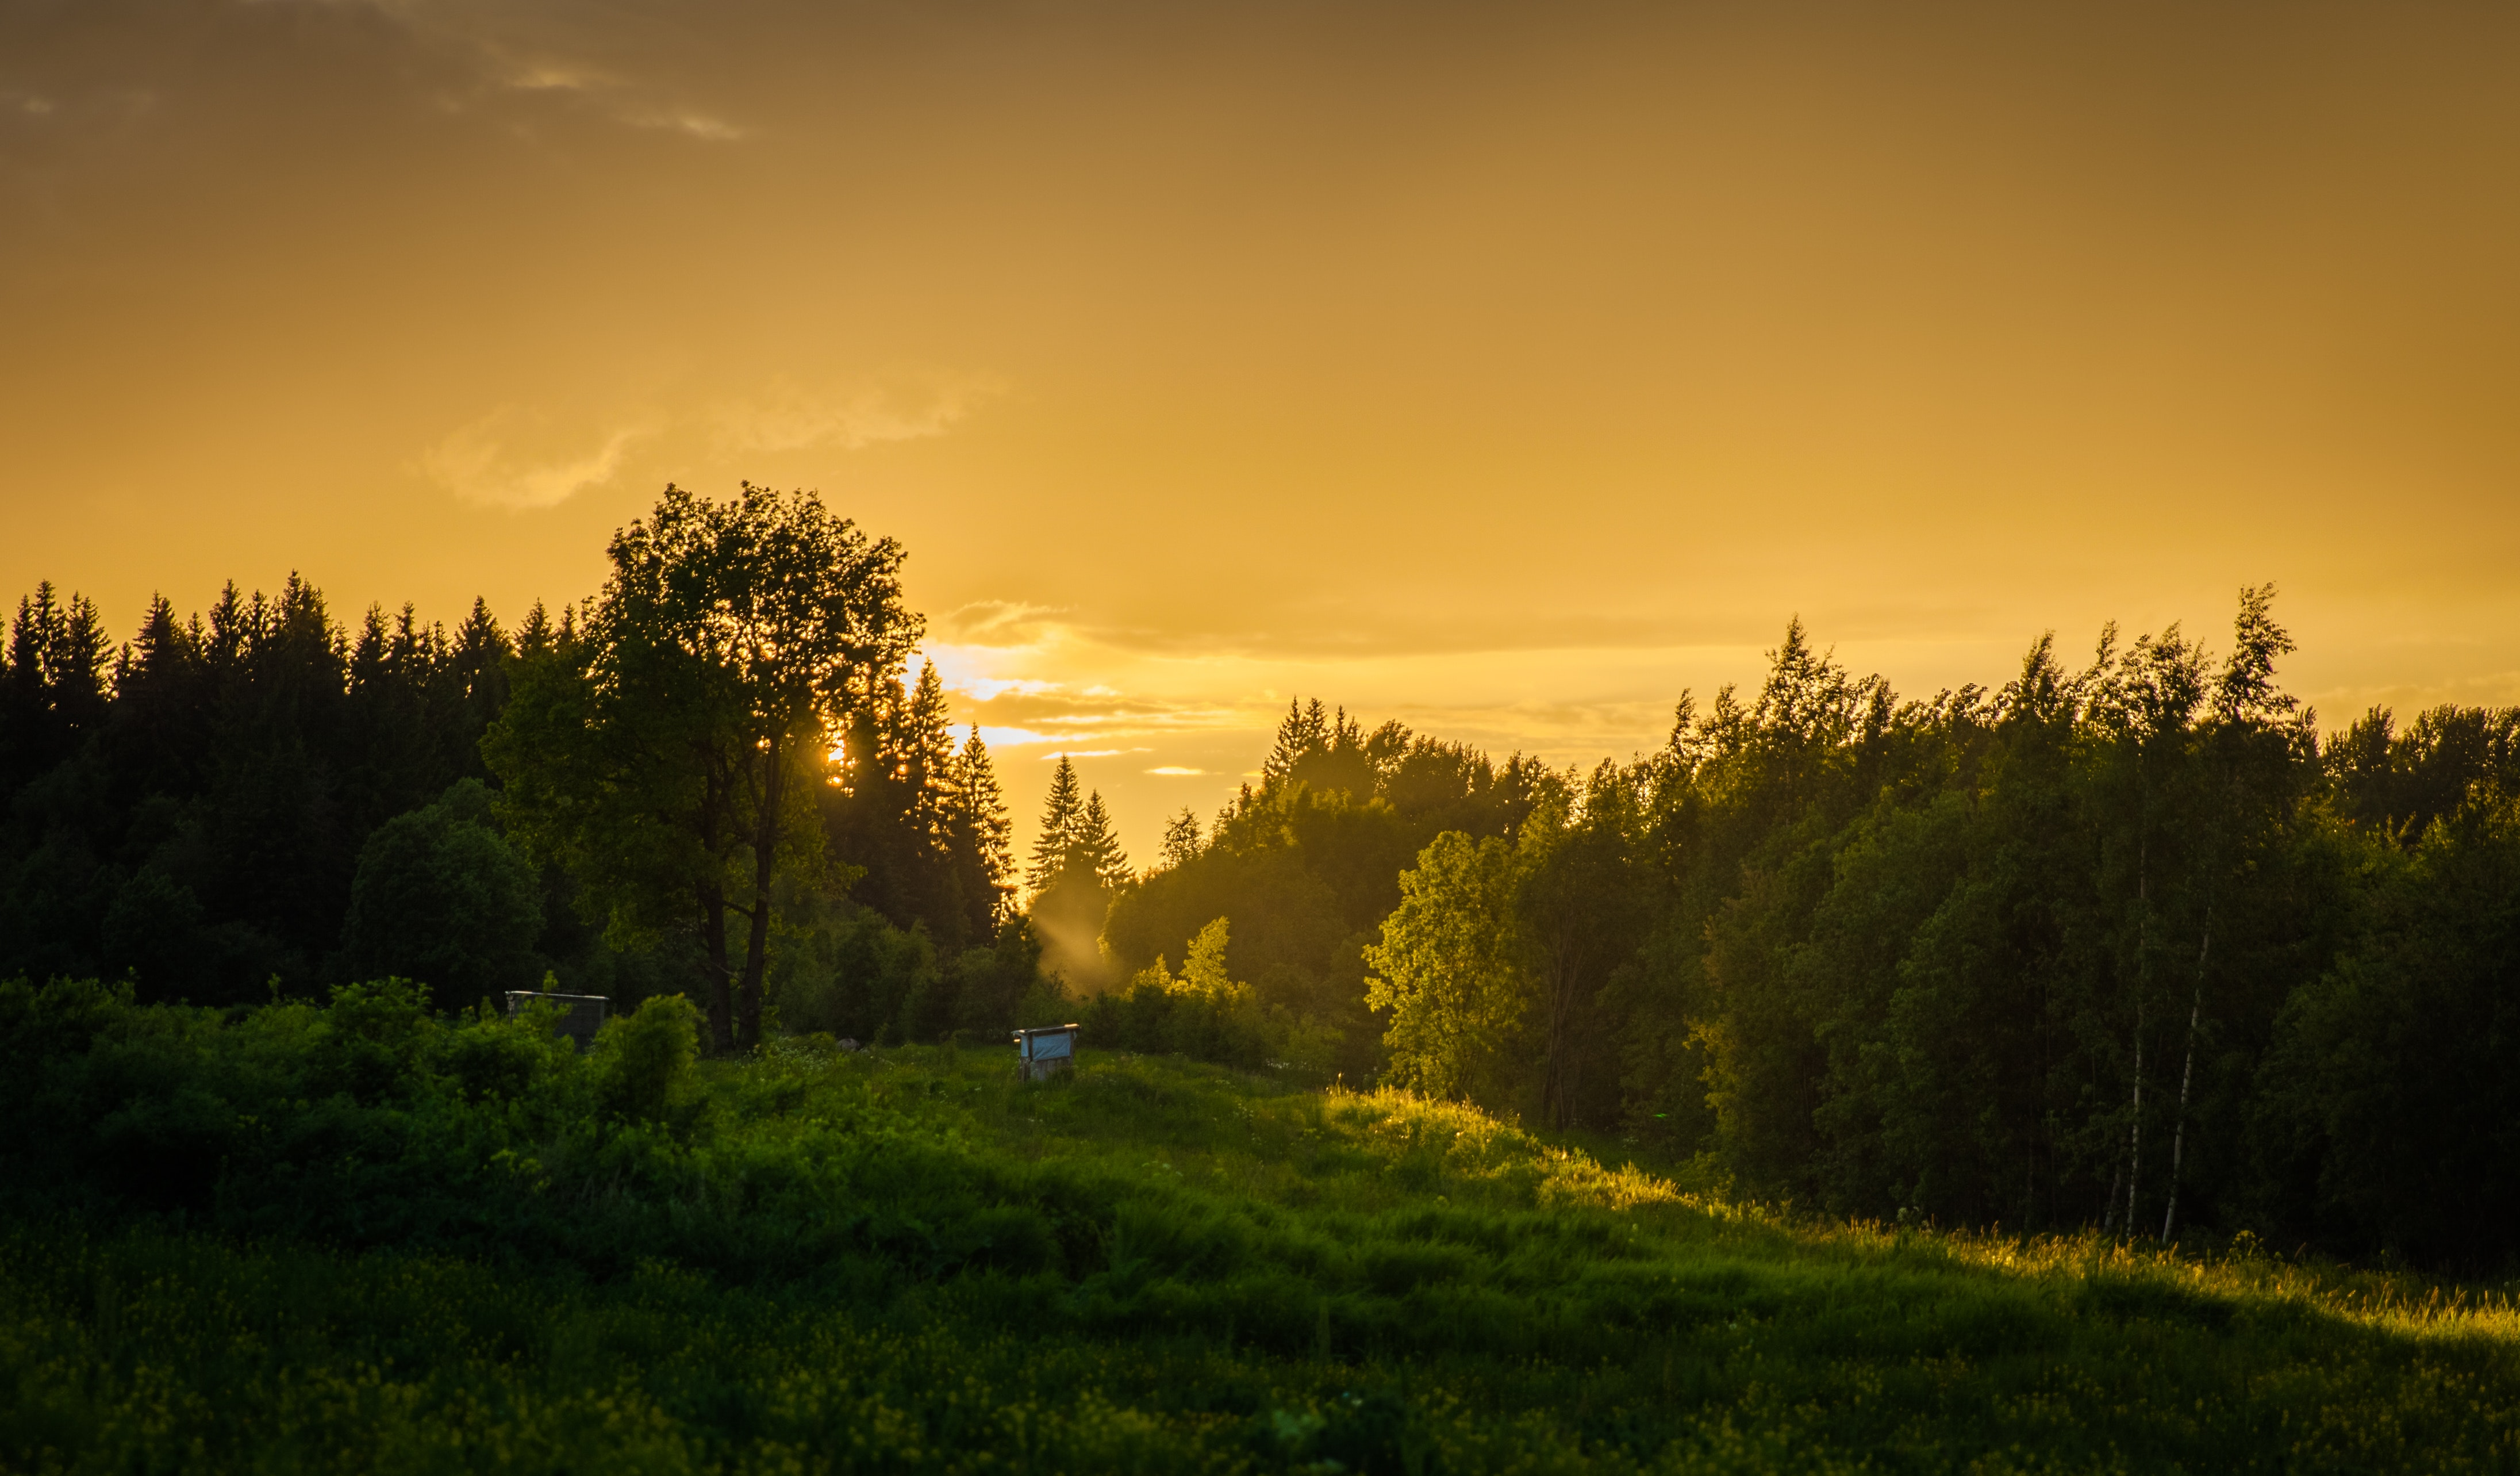 Forest During Sunset, Backlit, Countryside, Dawn, Daylight, HQ Photo